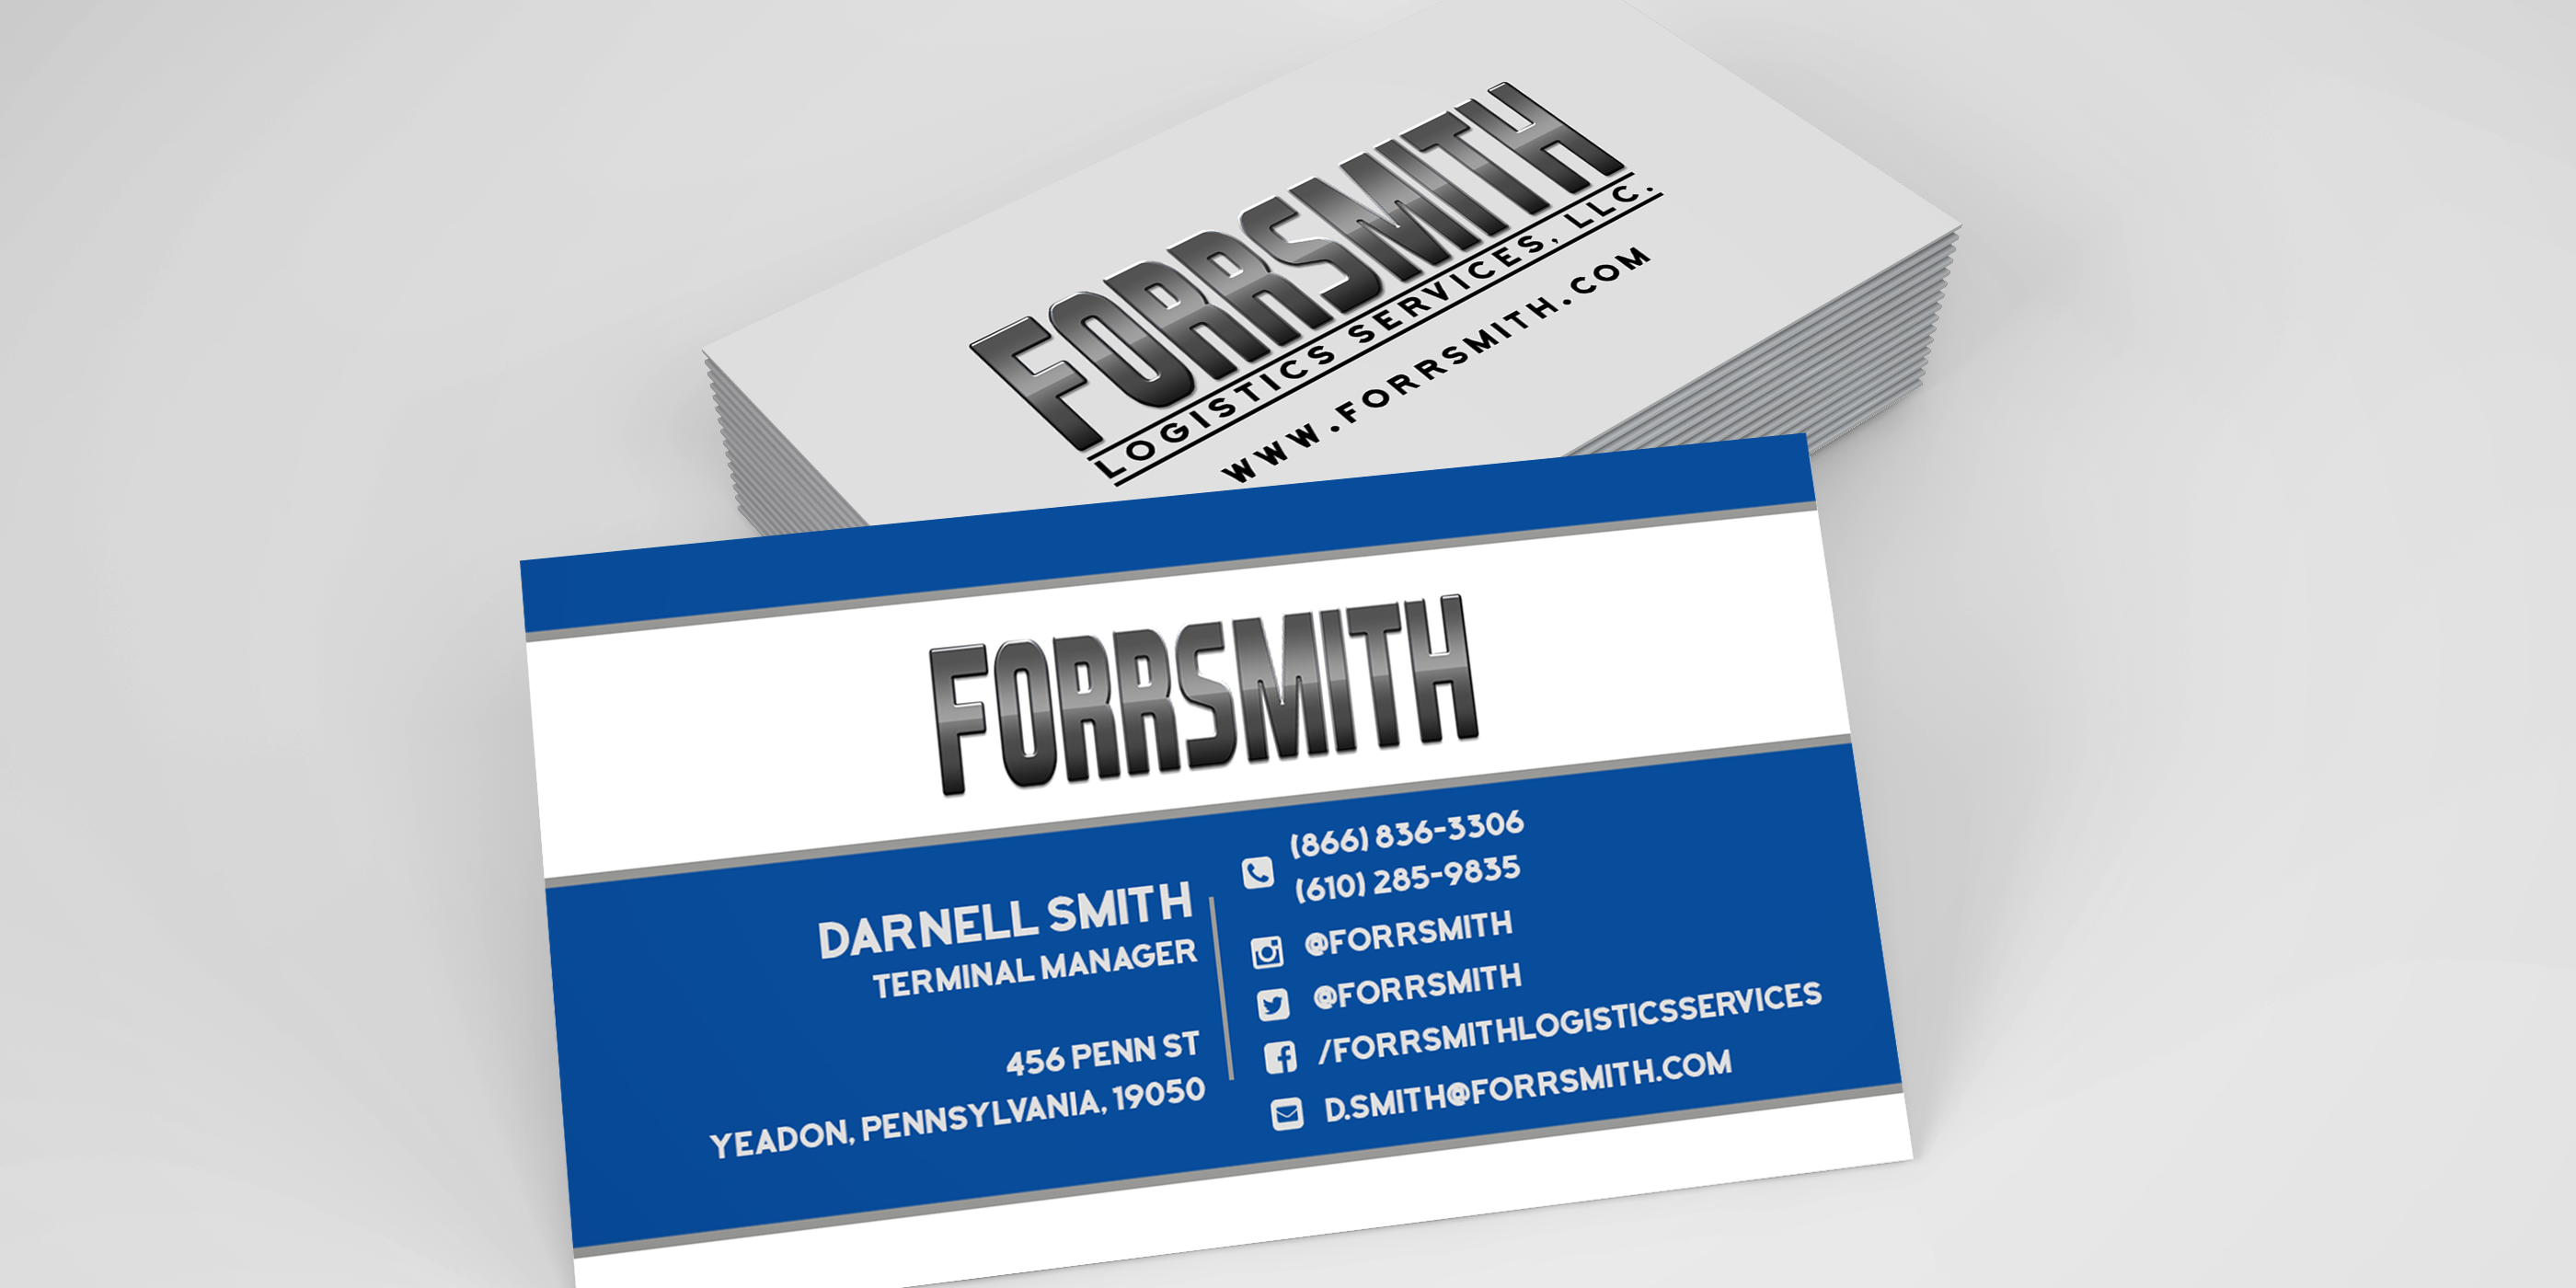 5 Rules to Creating a Totally Awesome Business Card Better Than